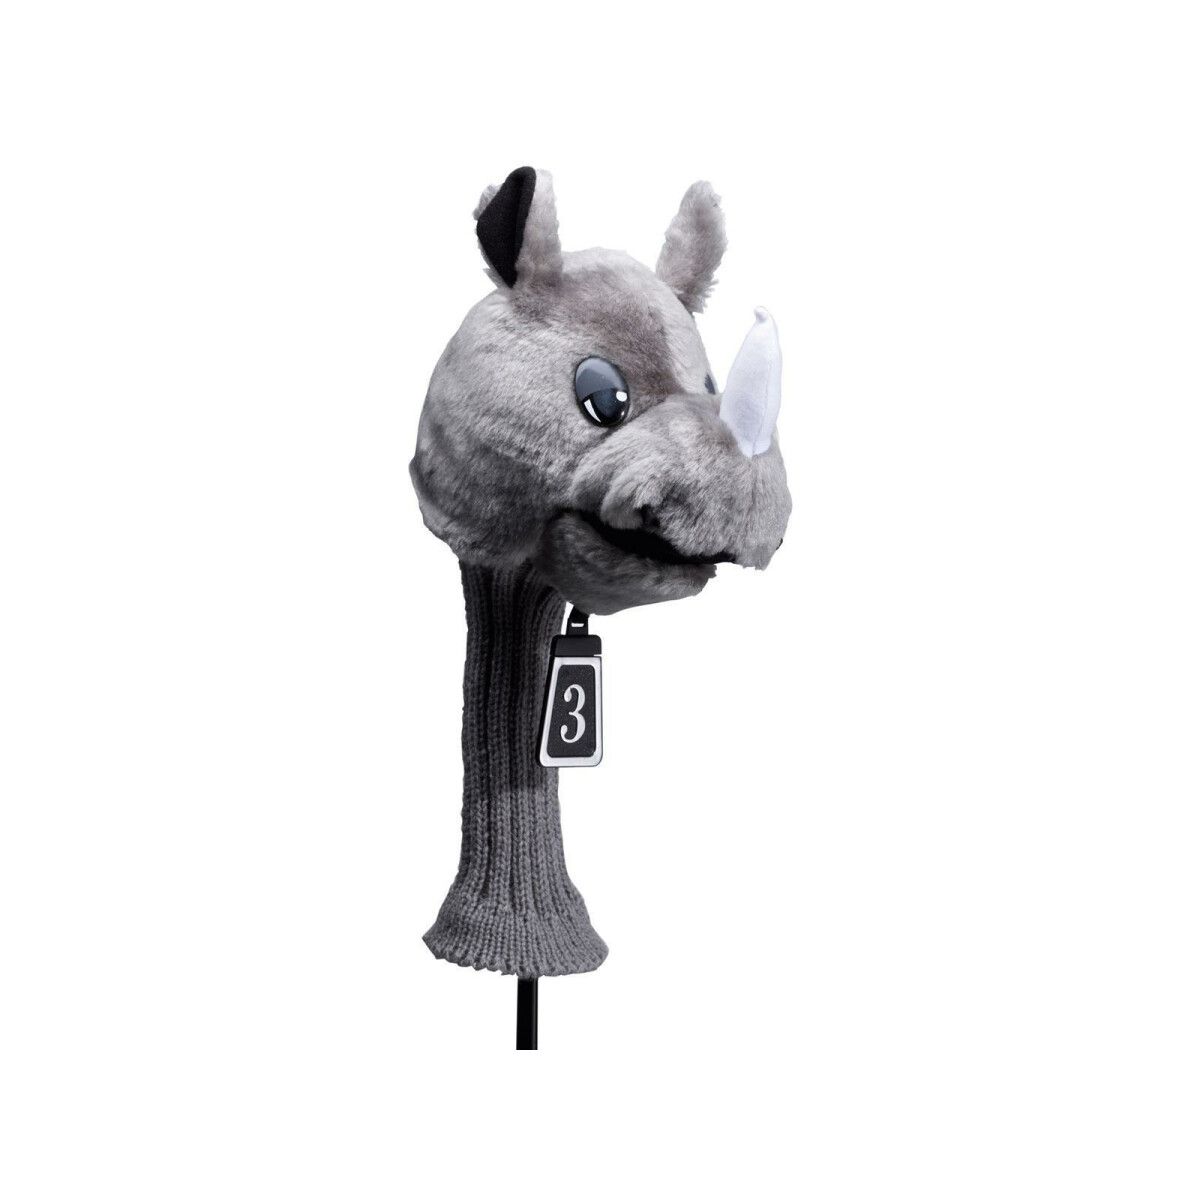 Tier-Headcover Nashorn